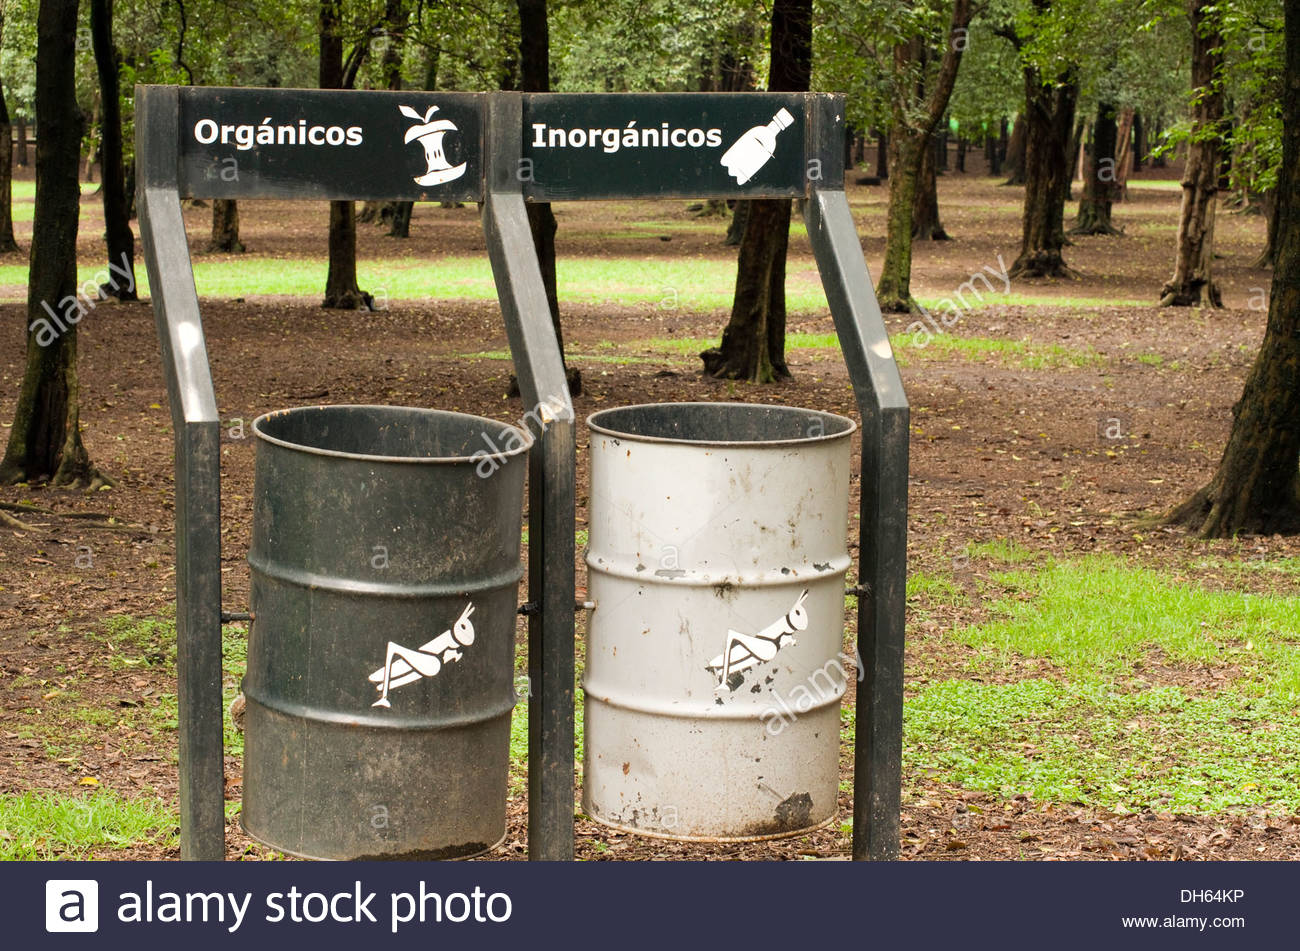 Recycle and non-recycle trash cans in Chapultepec Park in Mexico City. - Stock Image